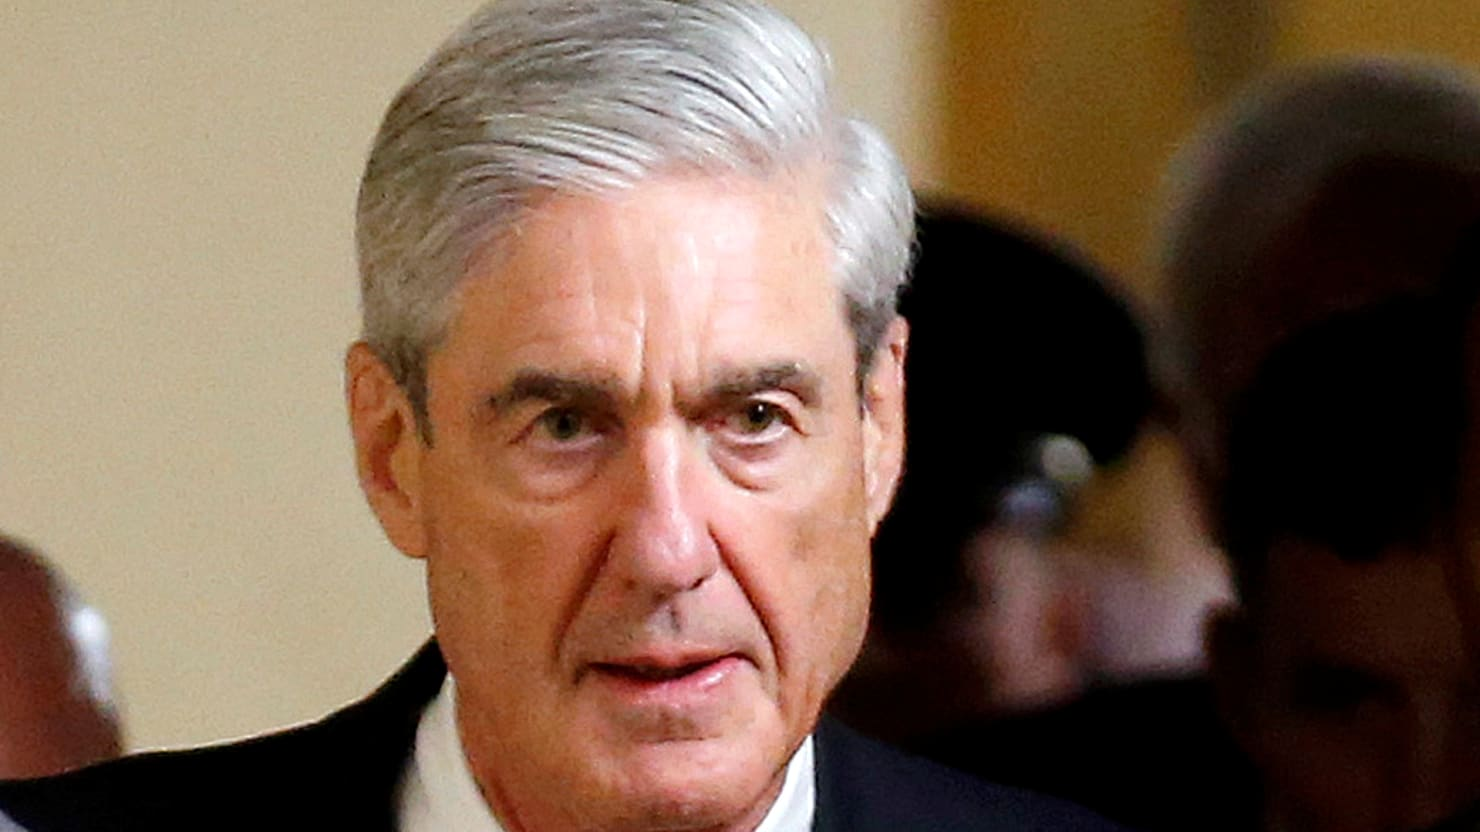 Trump's Lawyer: It's Time to End the Mueller Probe